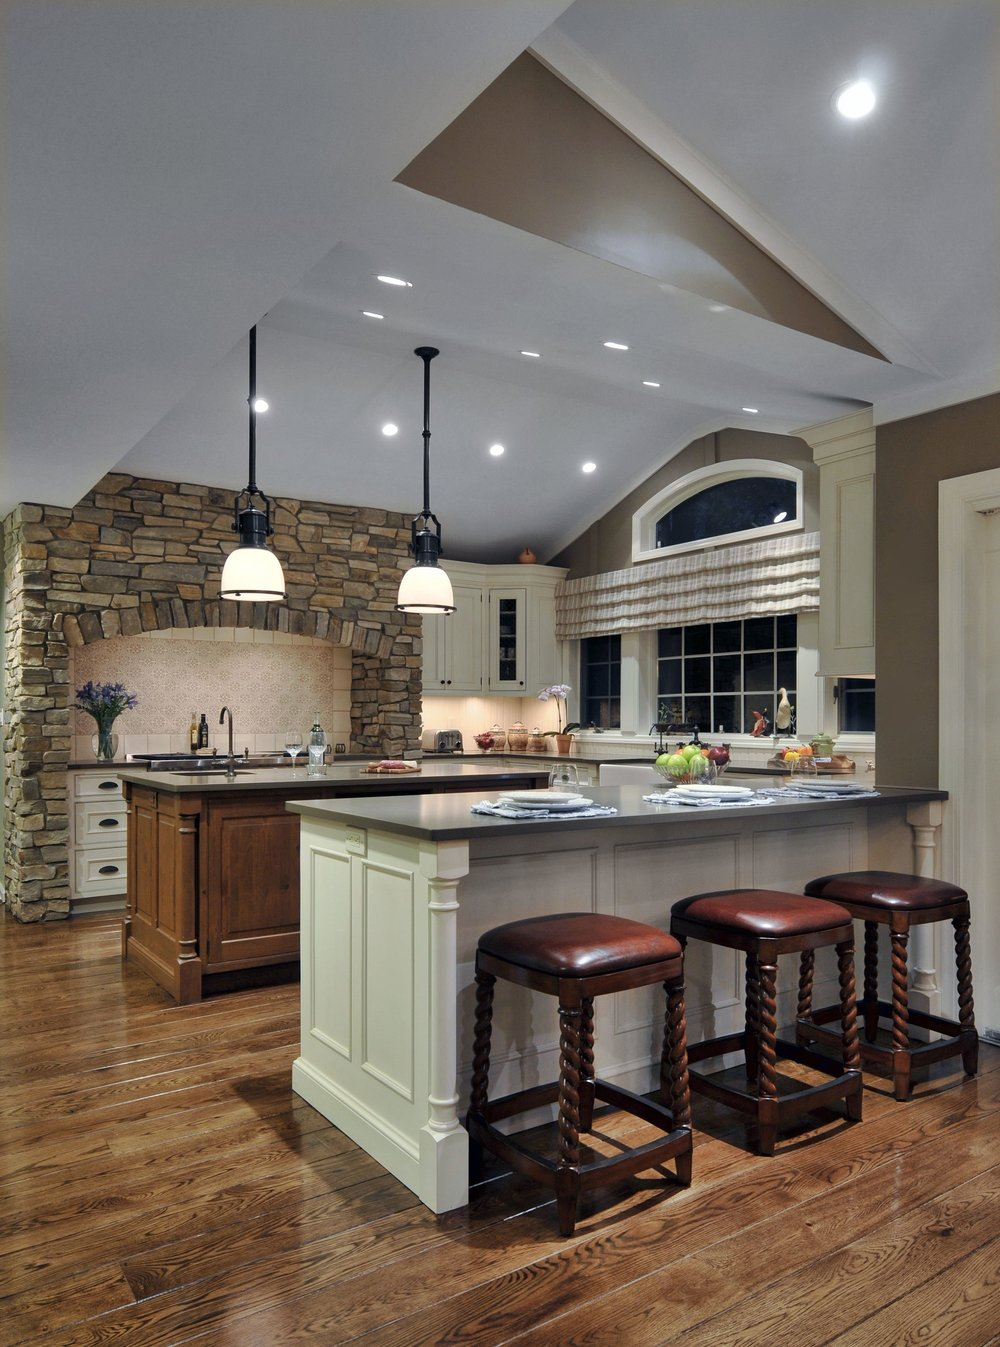 Traditional style kitchen with three wooden bar stools